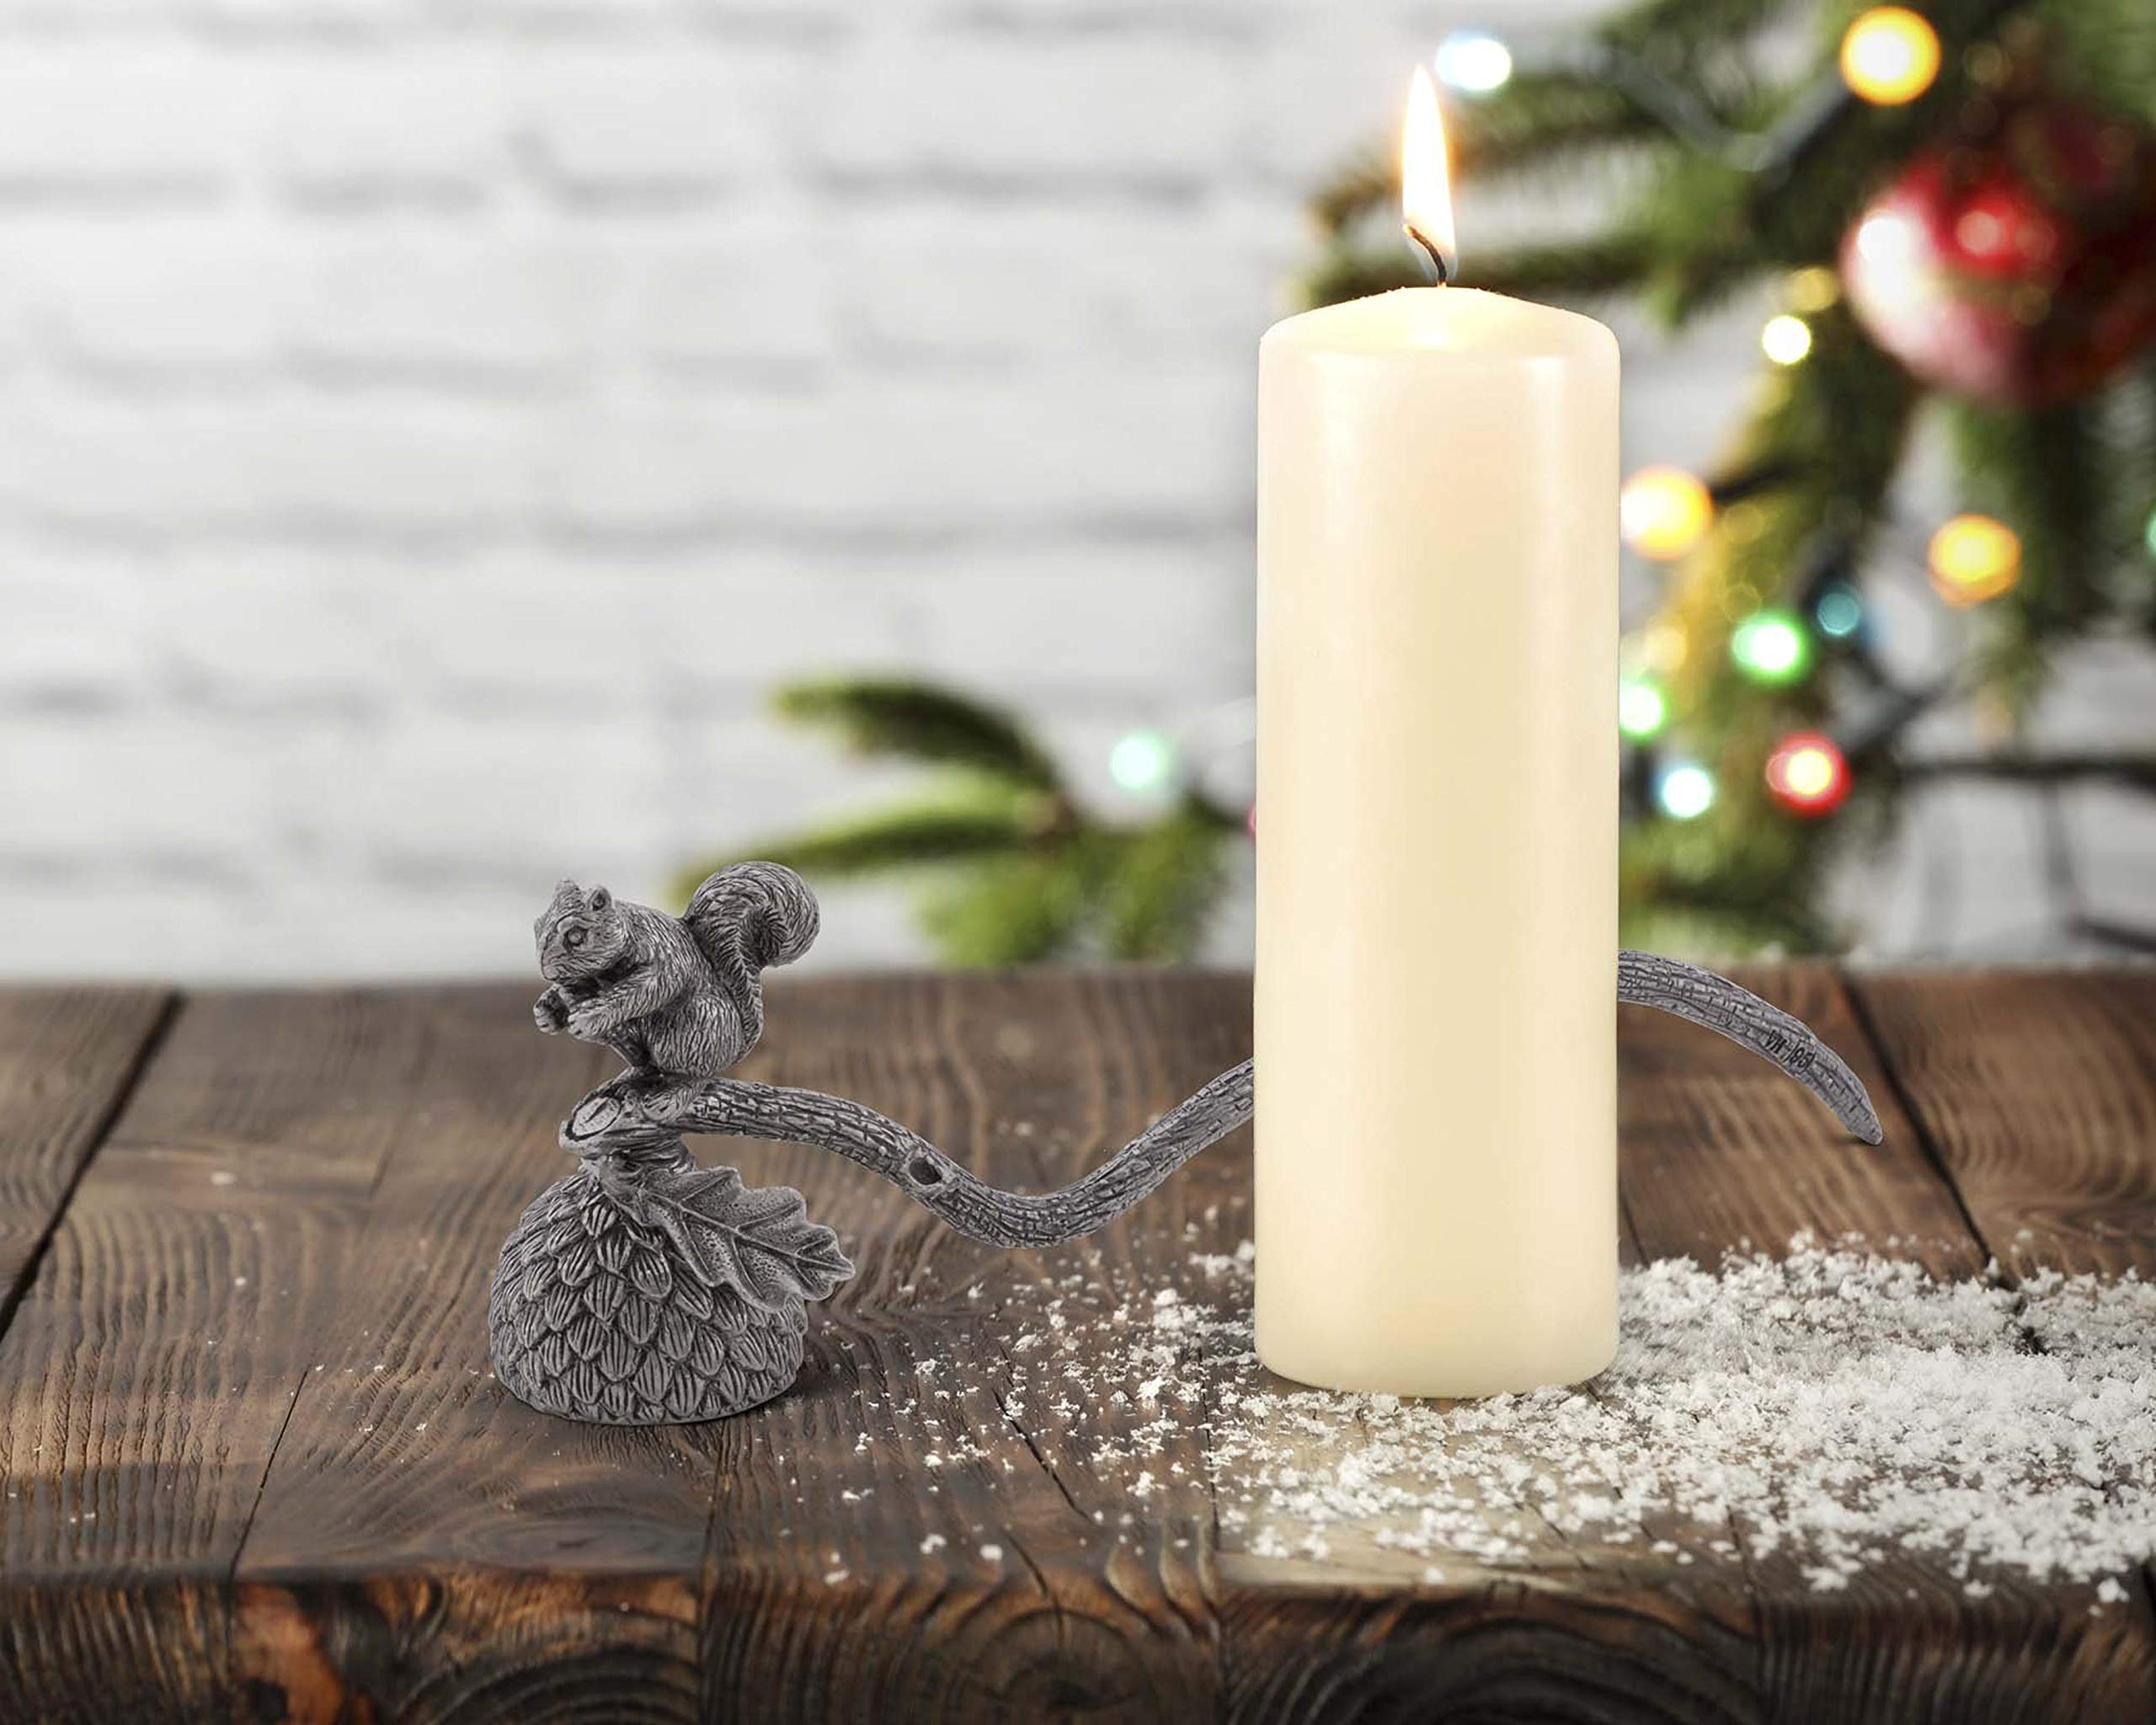 Vagabond House Pewter Squirrel Candle Snuffer 10'' Long by Vagabond House (Image #4)